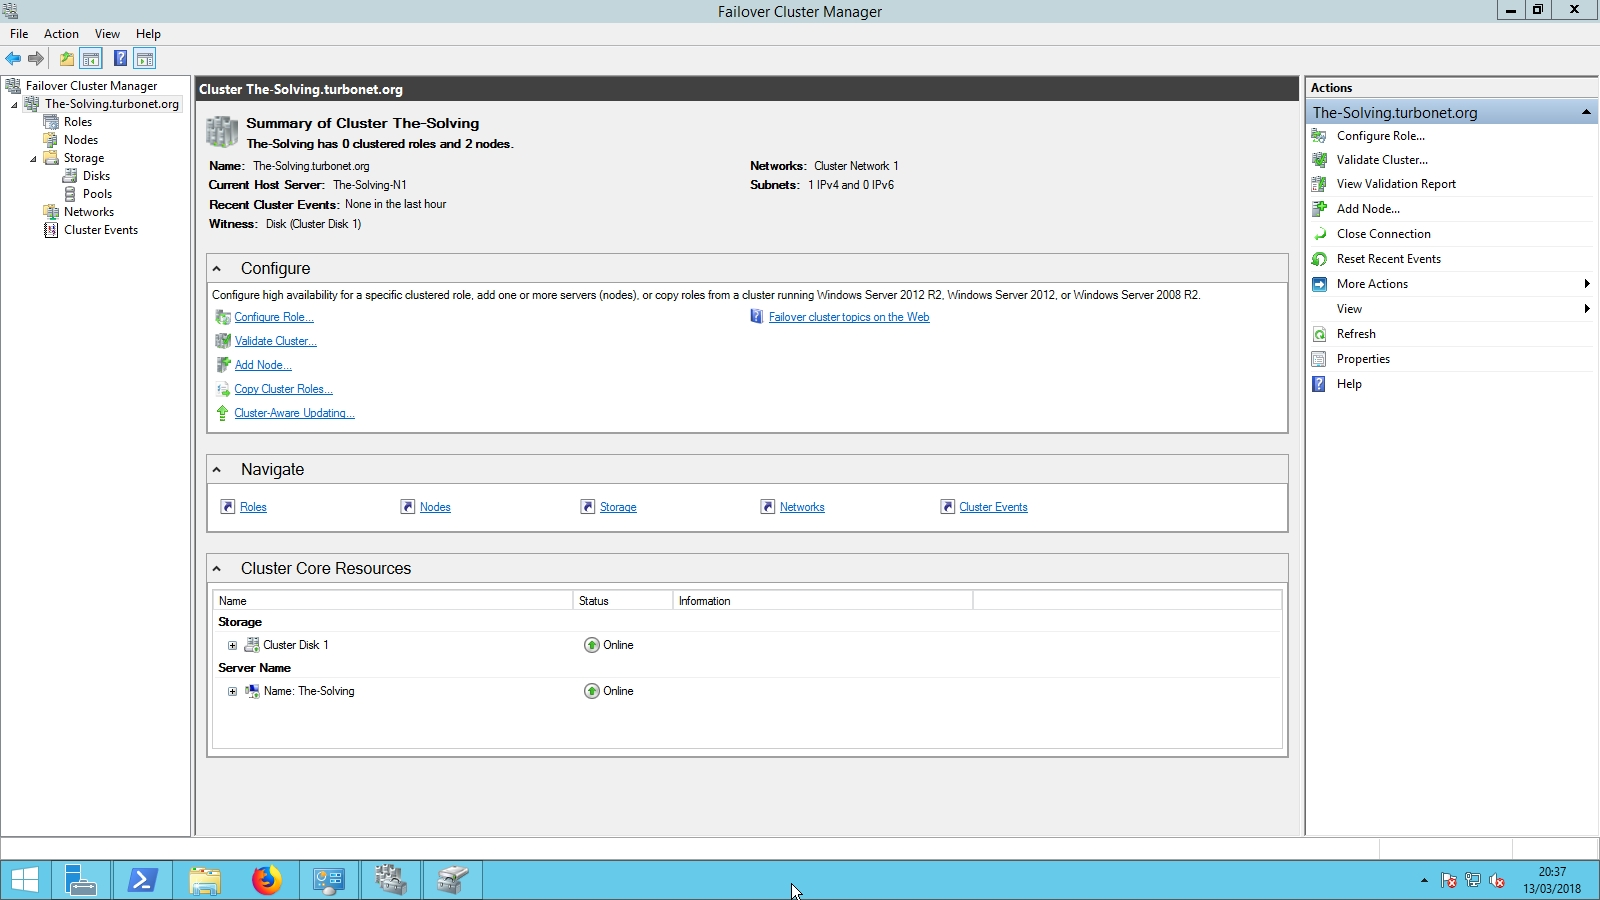 Failover Cluster Manager - Setup completed